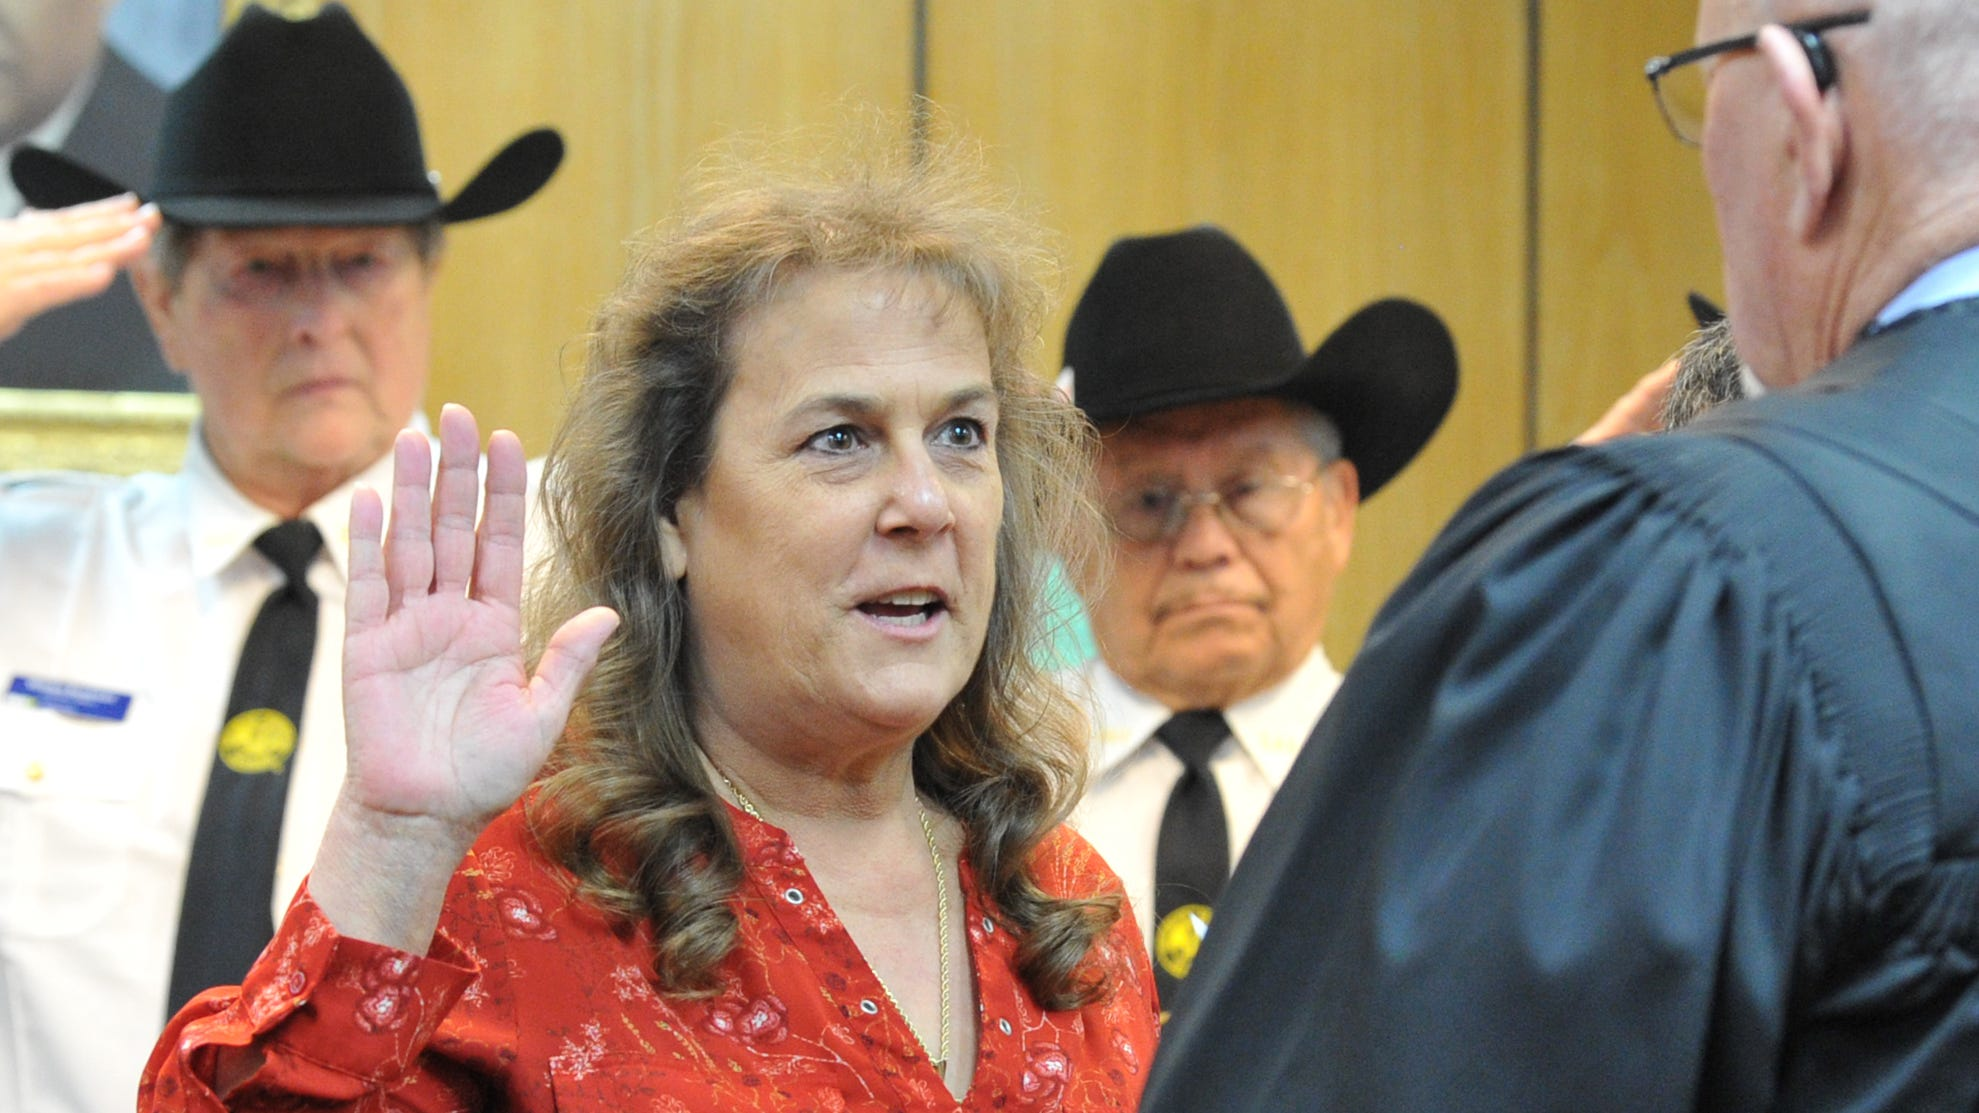 3a7b697c 8565 45b0 ba1c 5f07cc86493e Wichita County 2019 oath of office 7 jpg?crop=1979,1113,x1,y0&width=1979&height=1113&format=pjpg&auto=webp.'